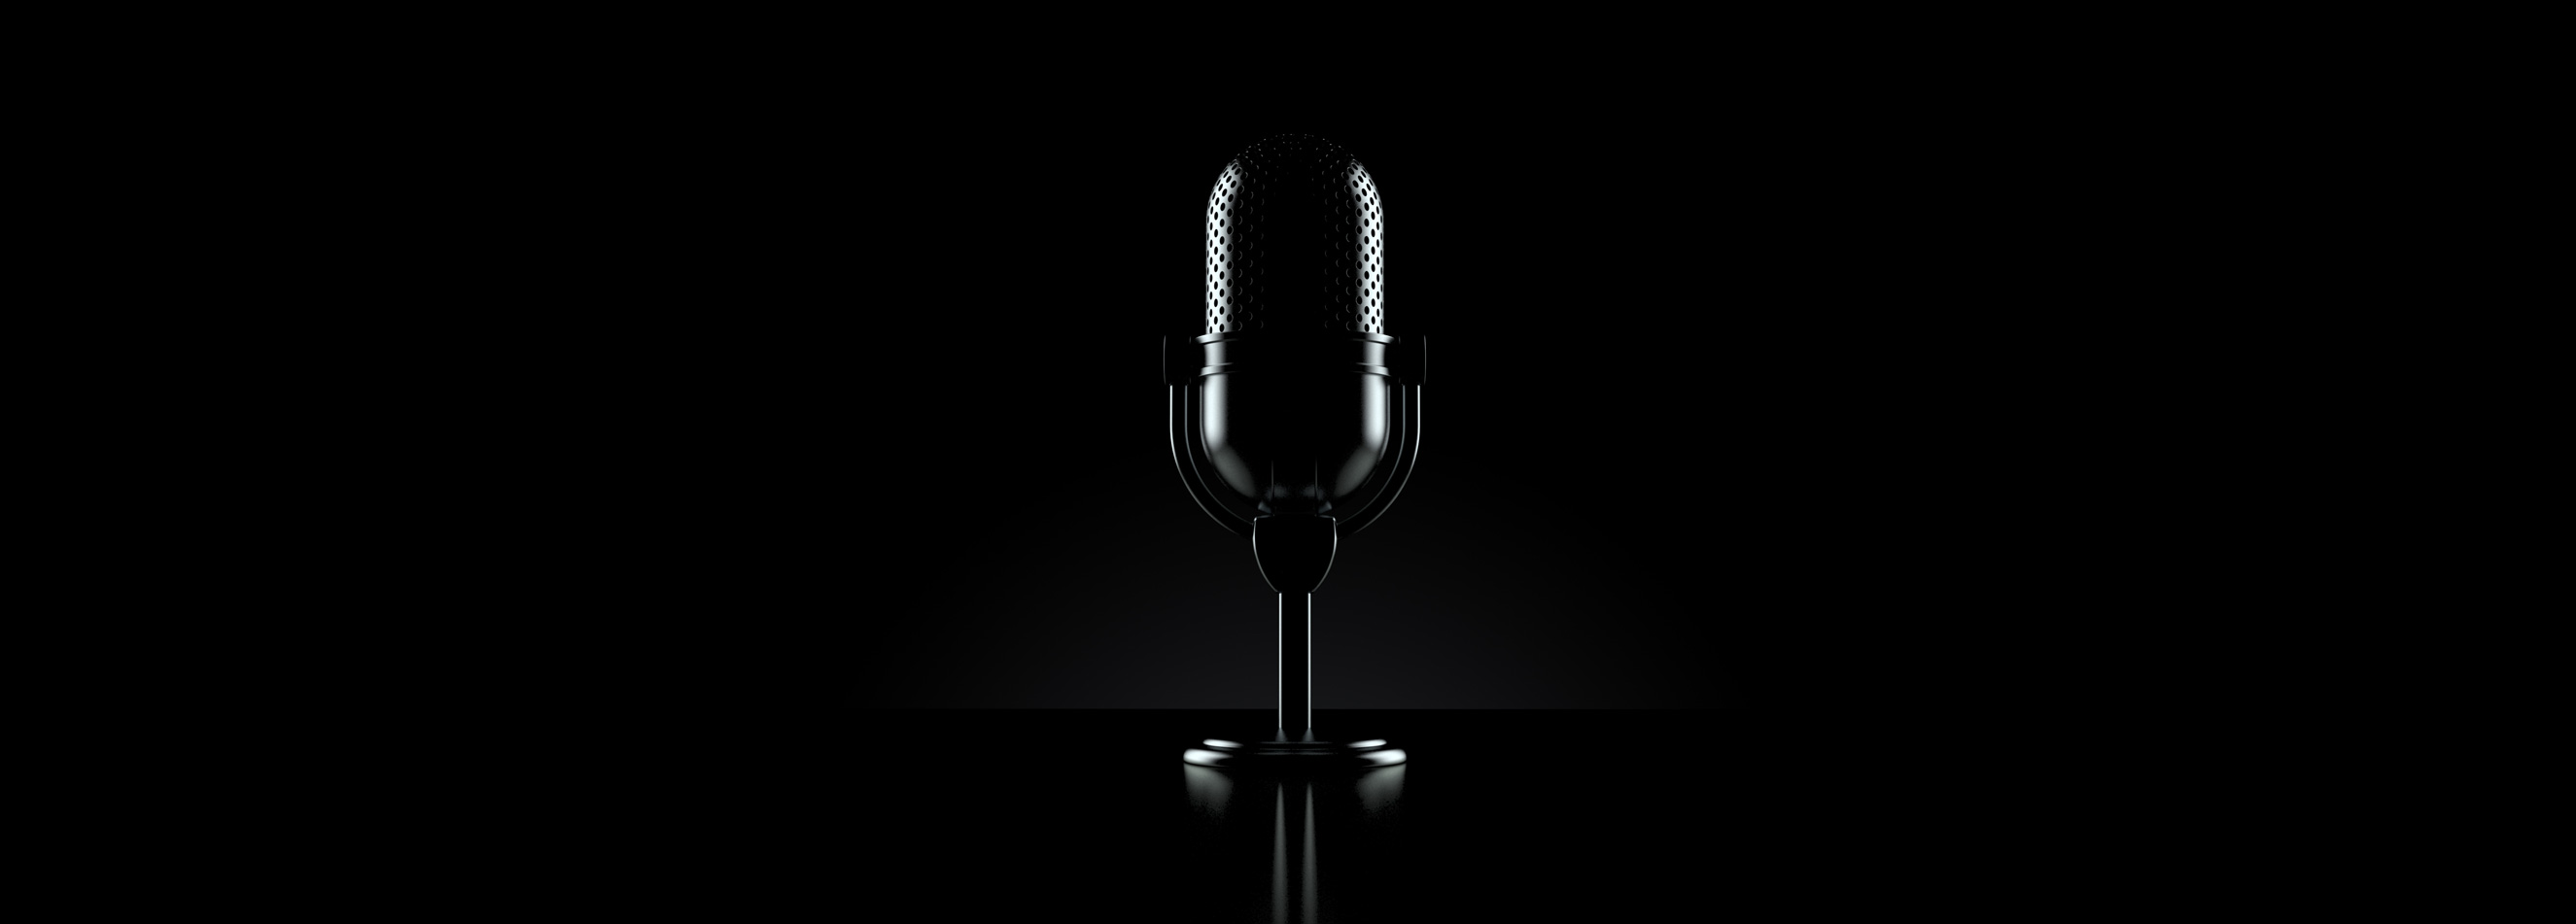 Microphone picture in a dark setup with high resolution reflections